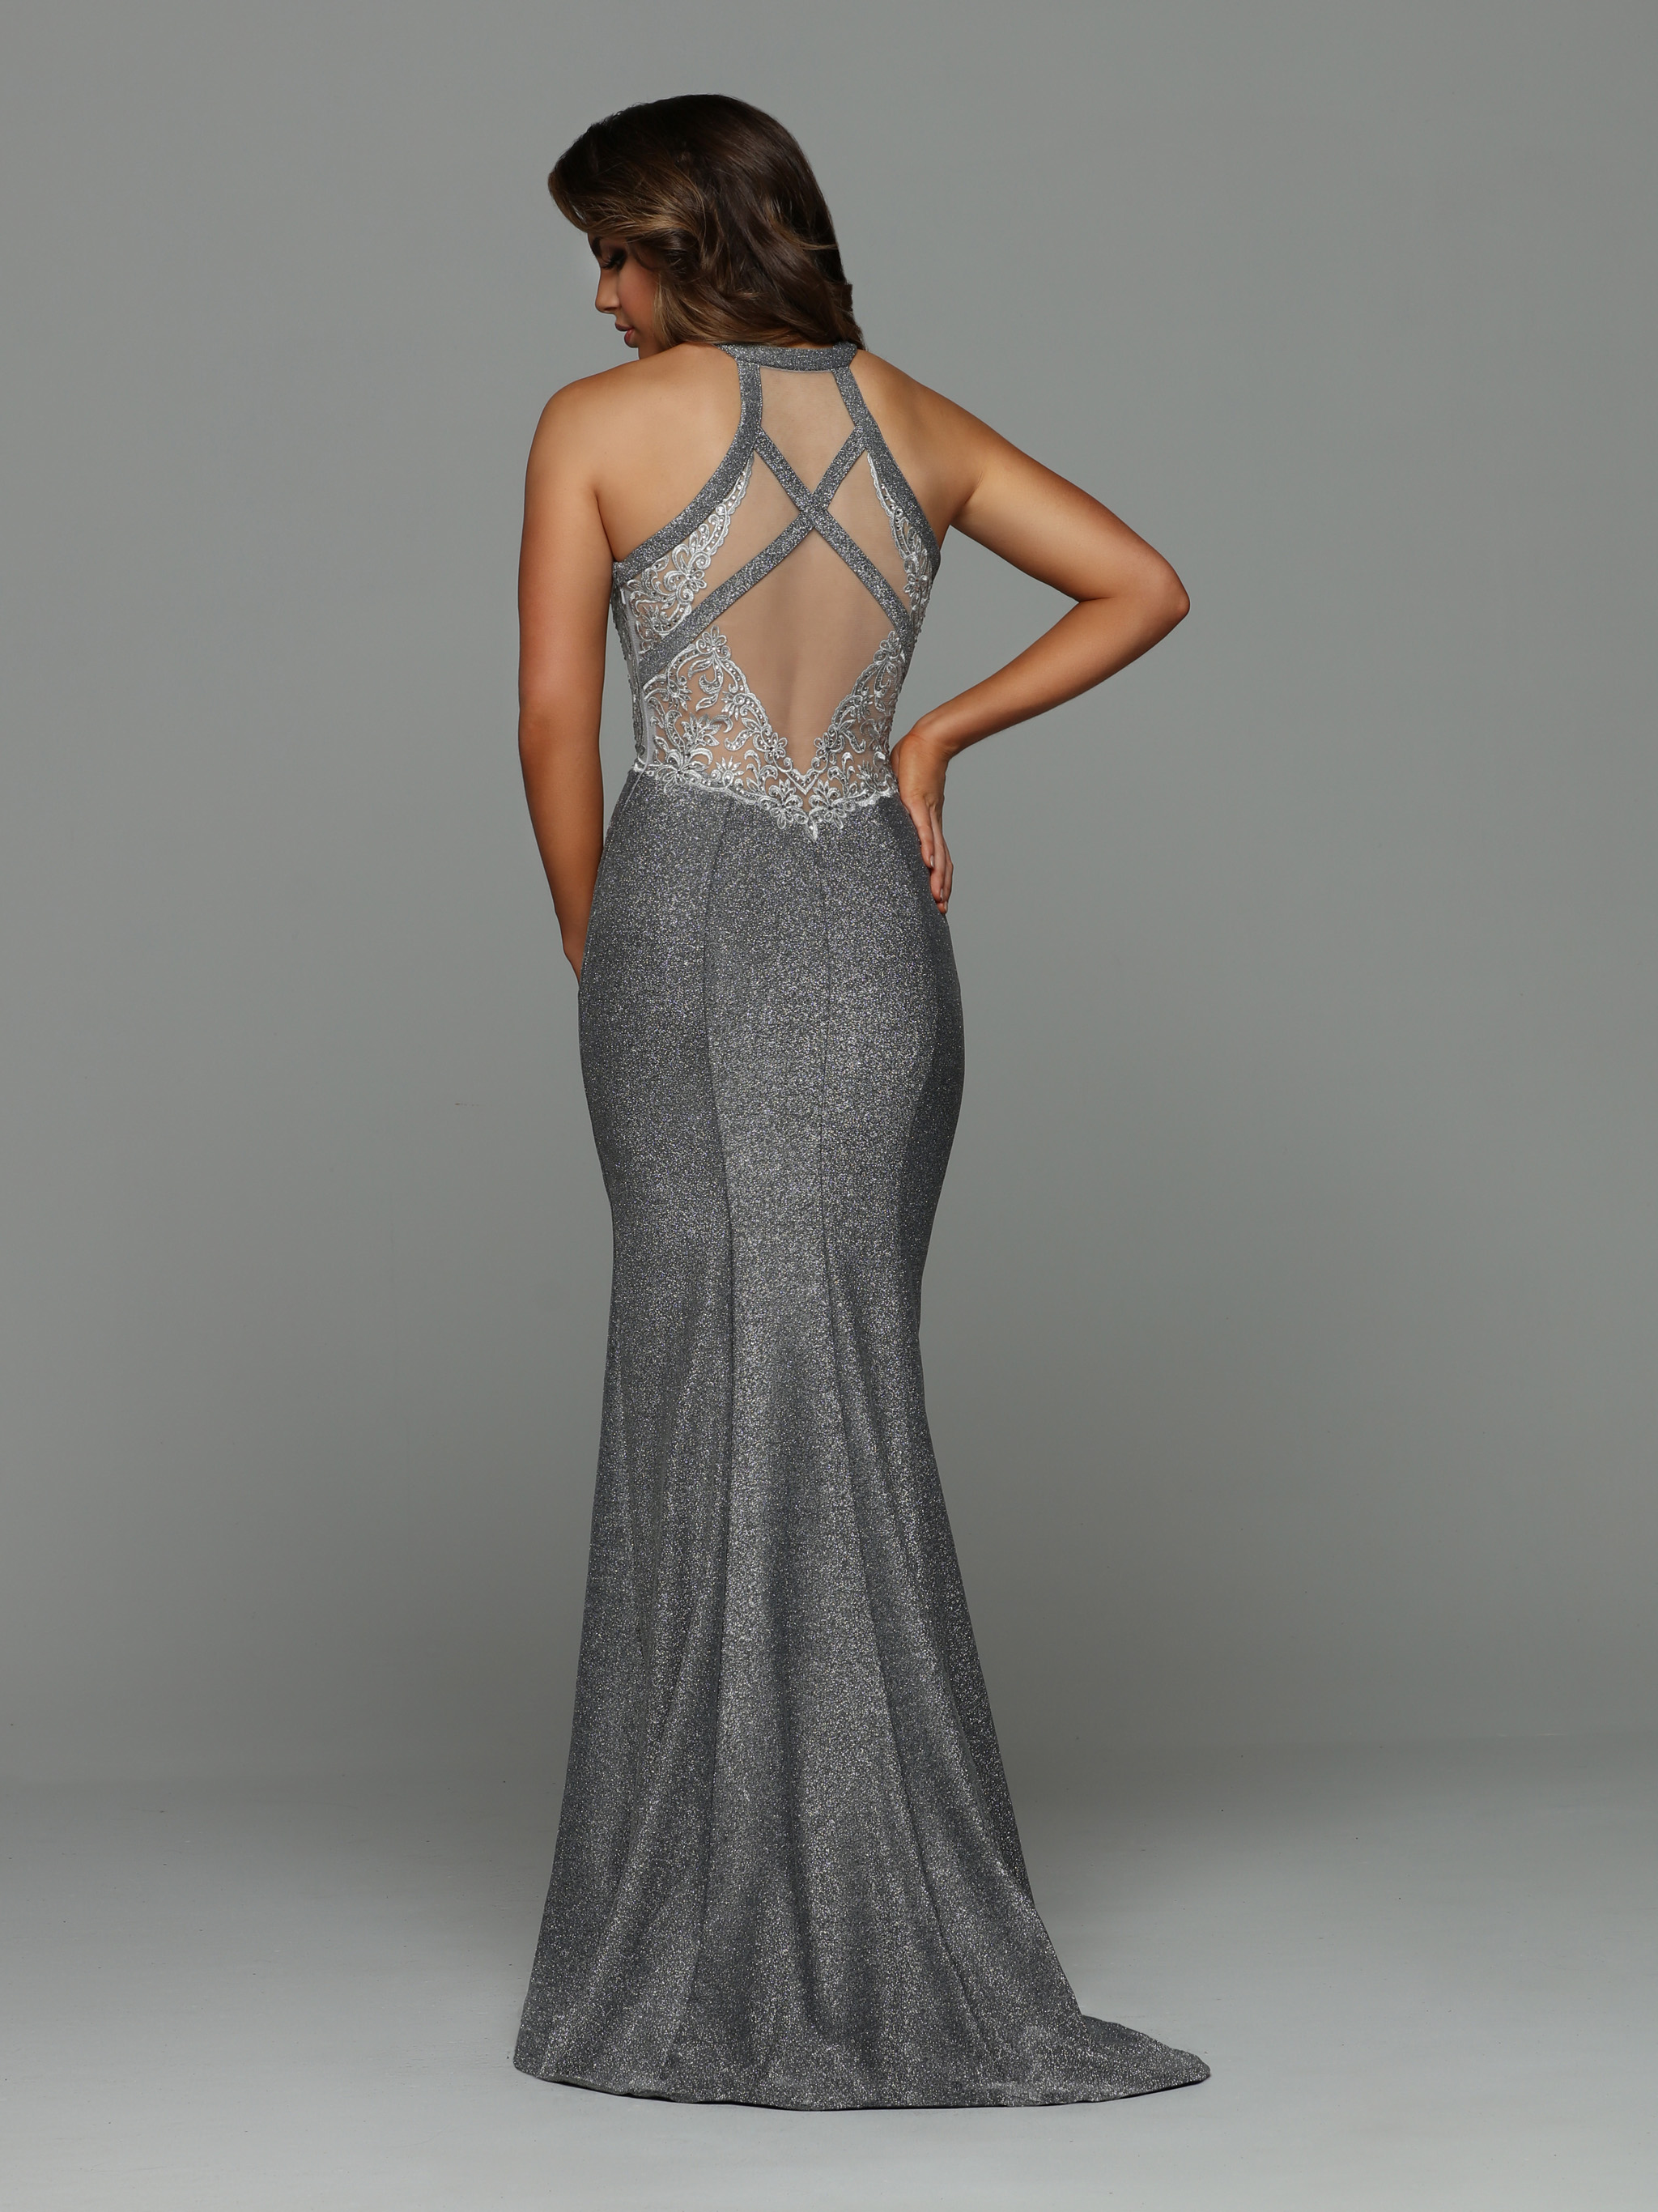 Image showing back view of style #71950